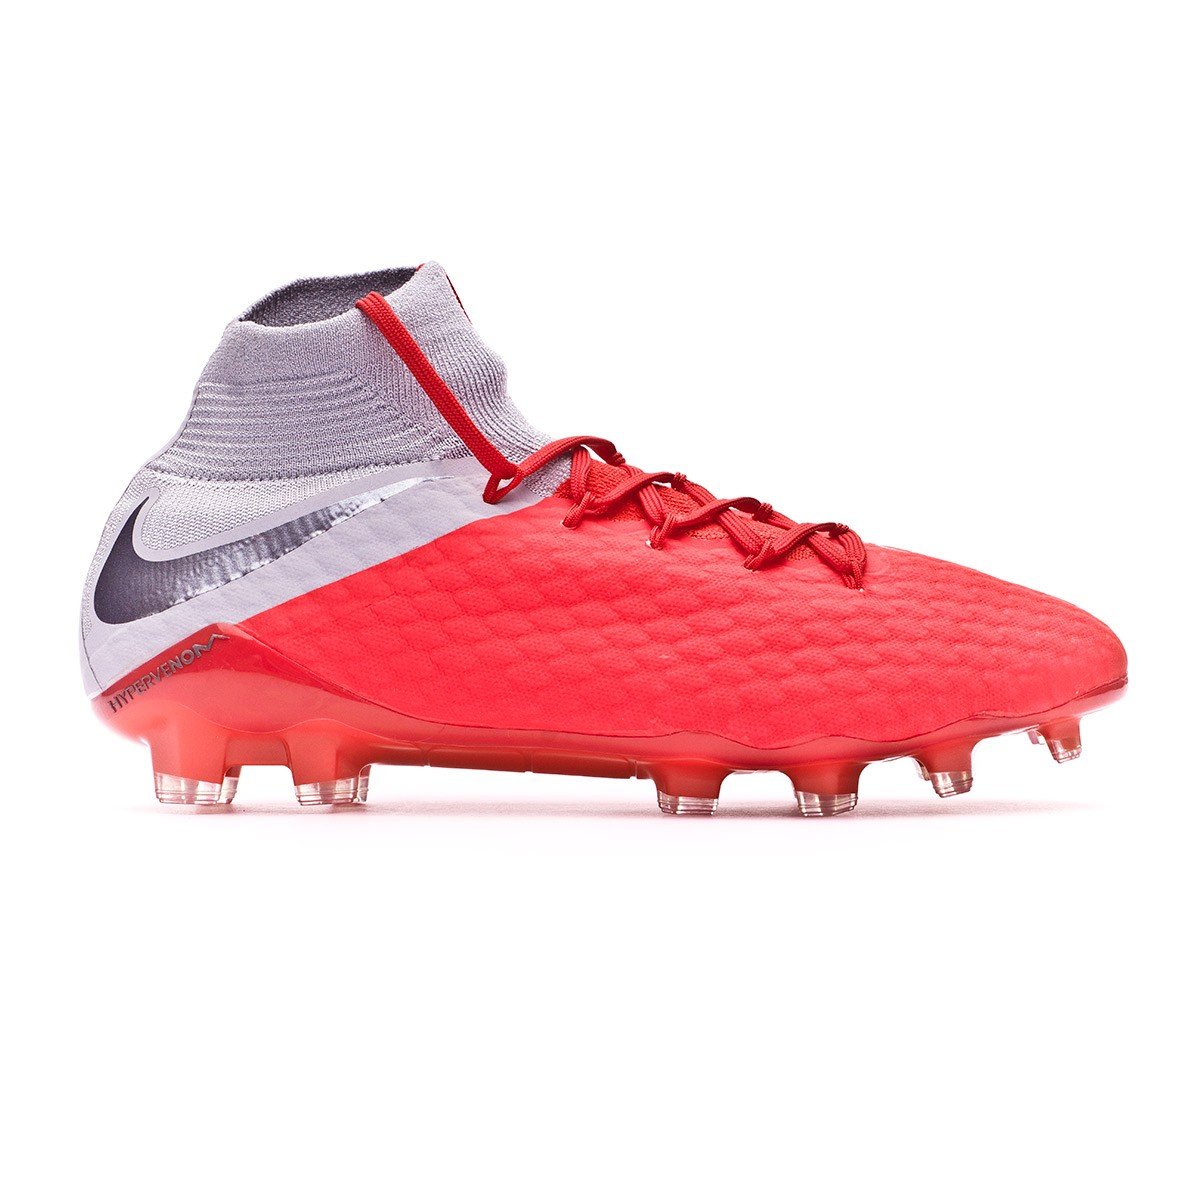 569fcd13fff Football Boots Nike Hypervenom Phantom III Pro DF FG Light crimson-Metallic  dark grey-Wolf grey - Tienda de fútbol Fútbol Emotion